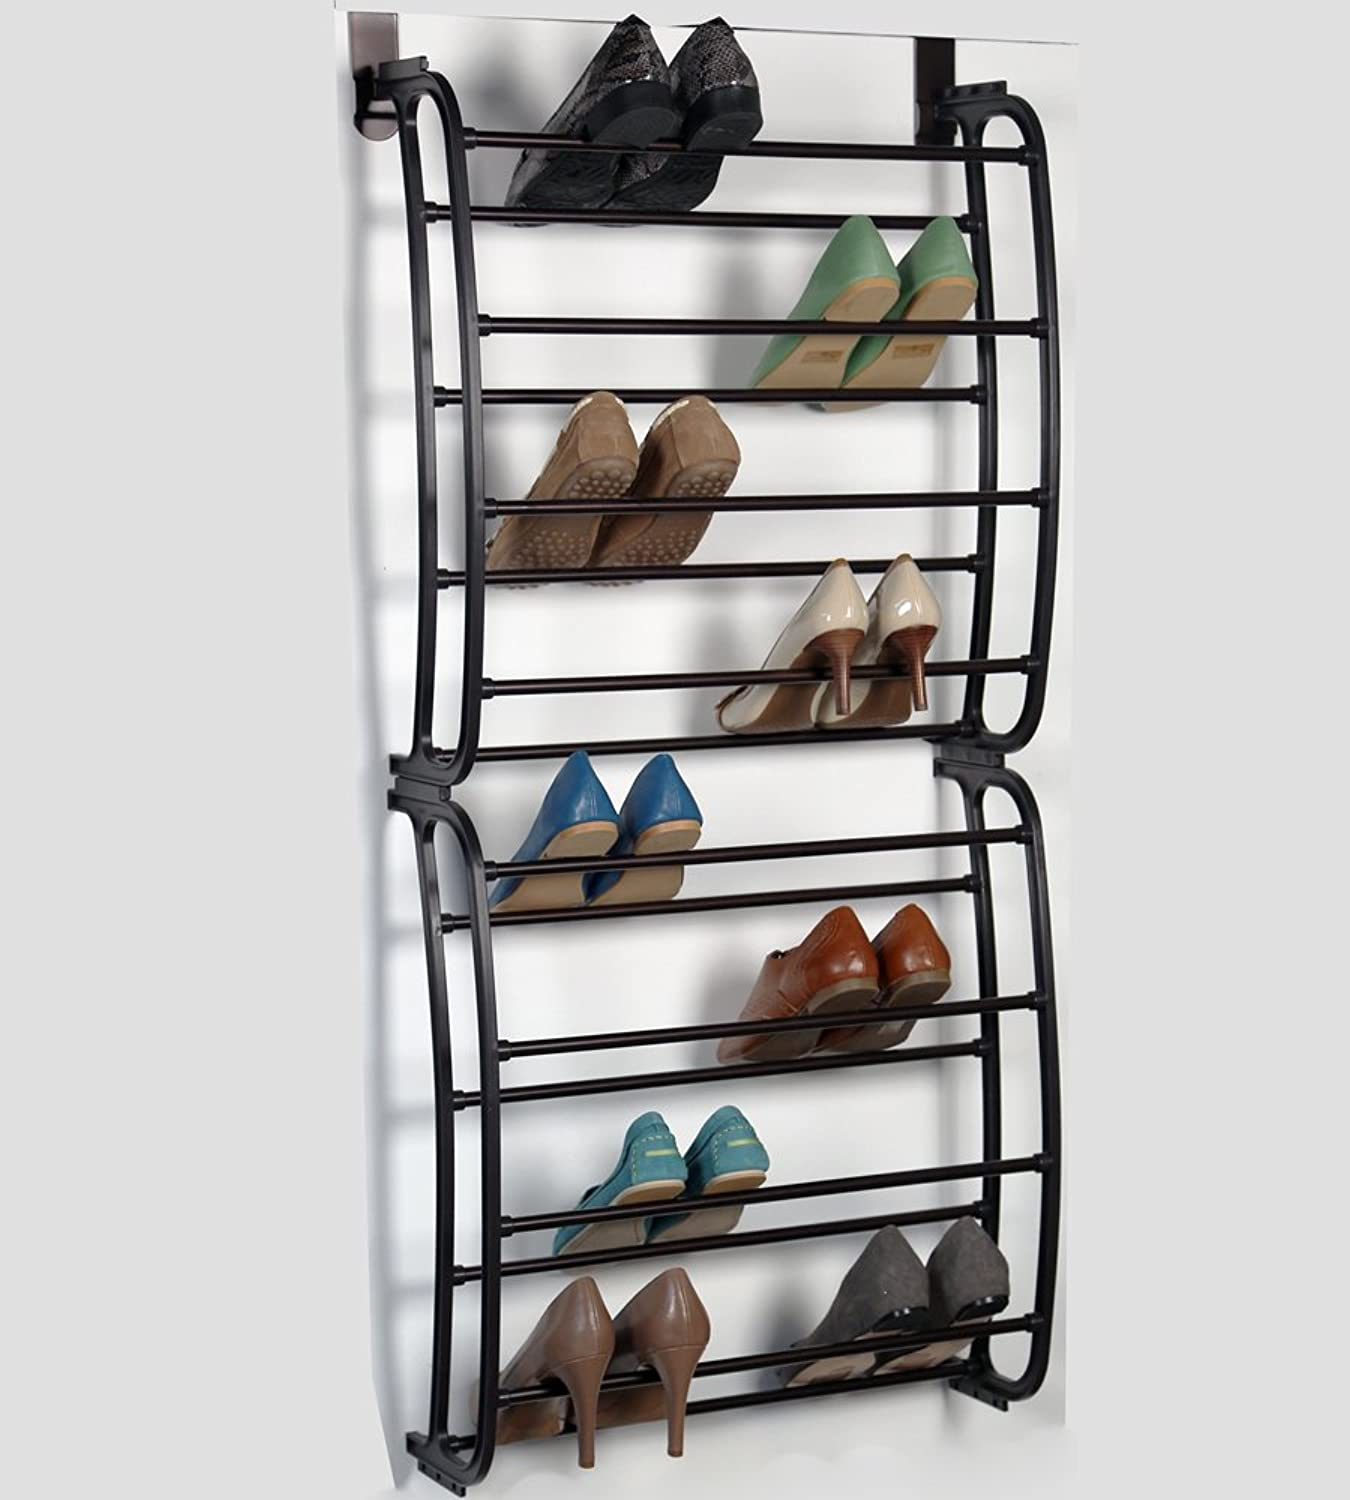 Richards Homewares 1006242 Over The Door Rack-24 Pairs-shoes Organizer Finish-Metal Tubes-No Tools Required-Easy Assembly-22.9 x 8.1 x 49, Bronze